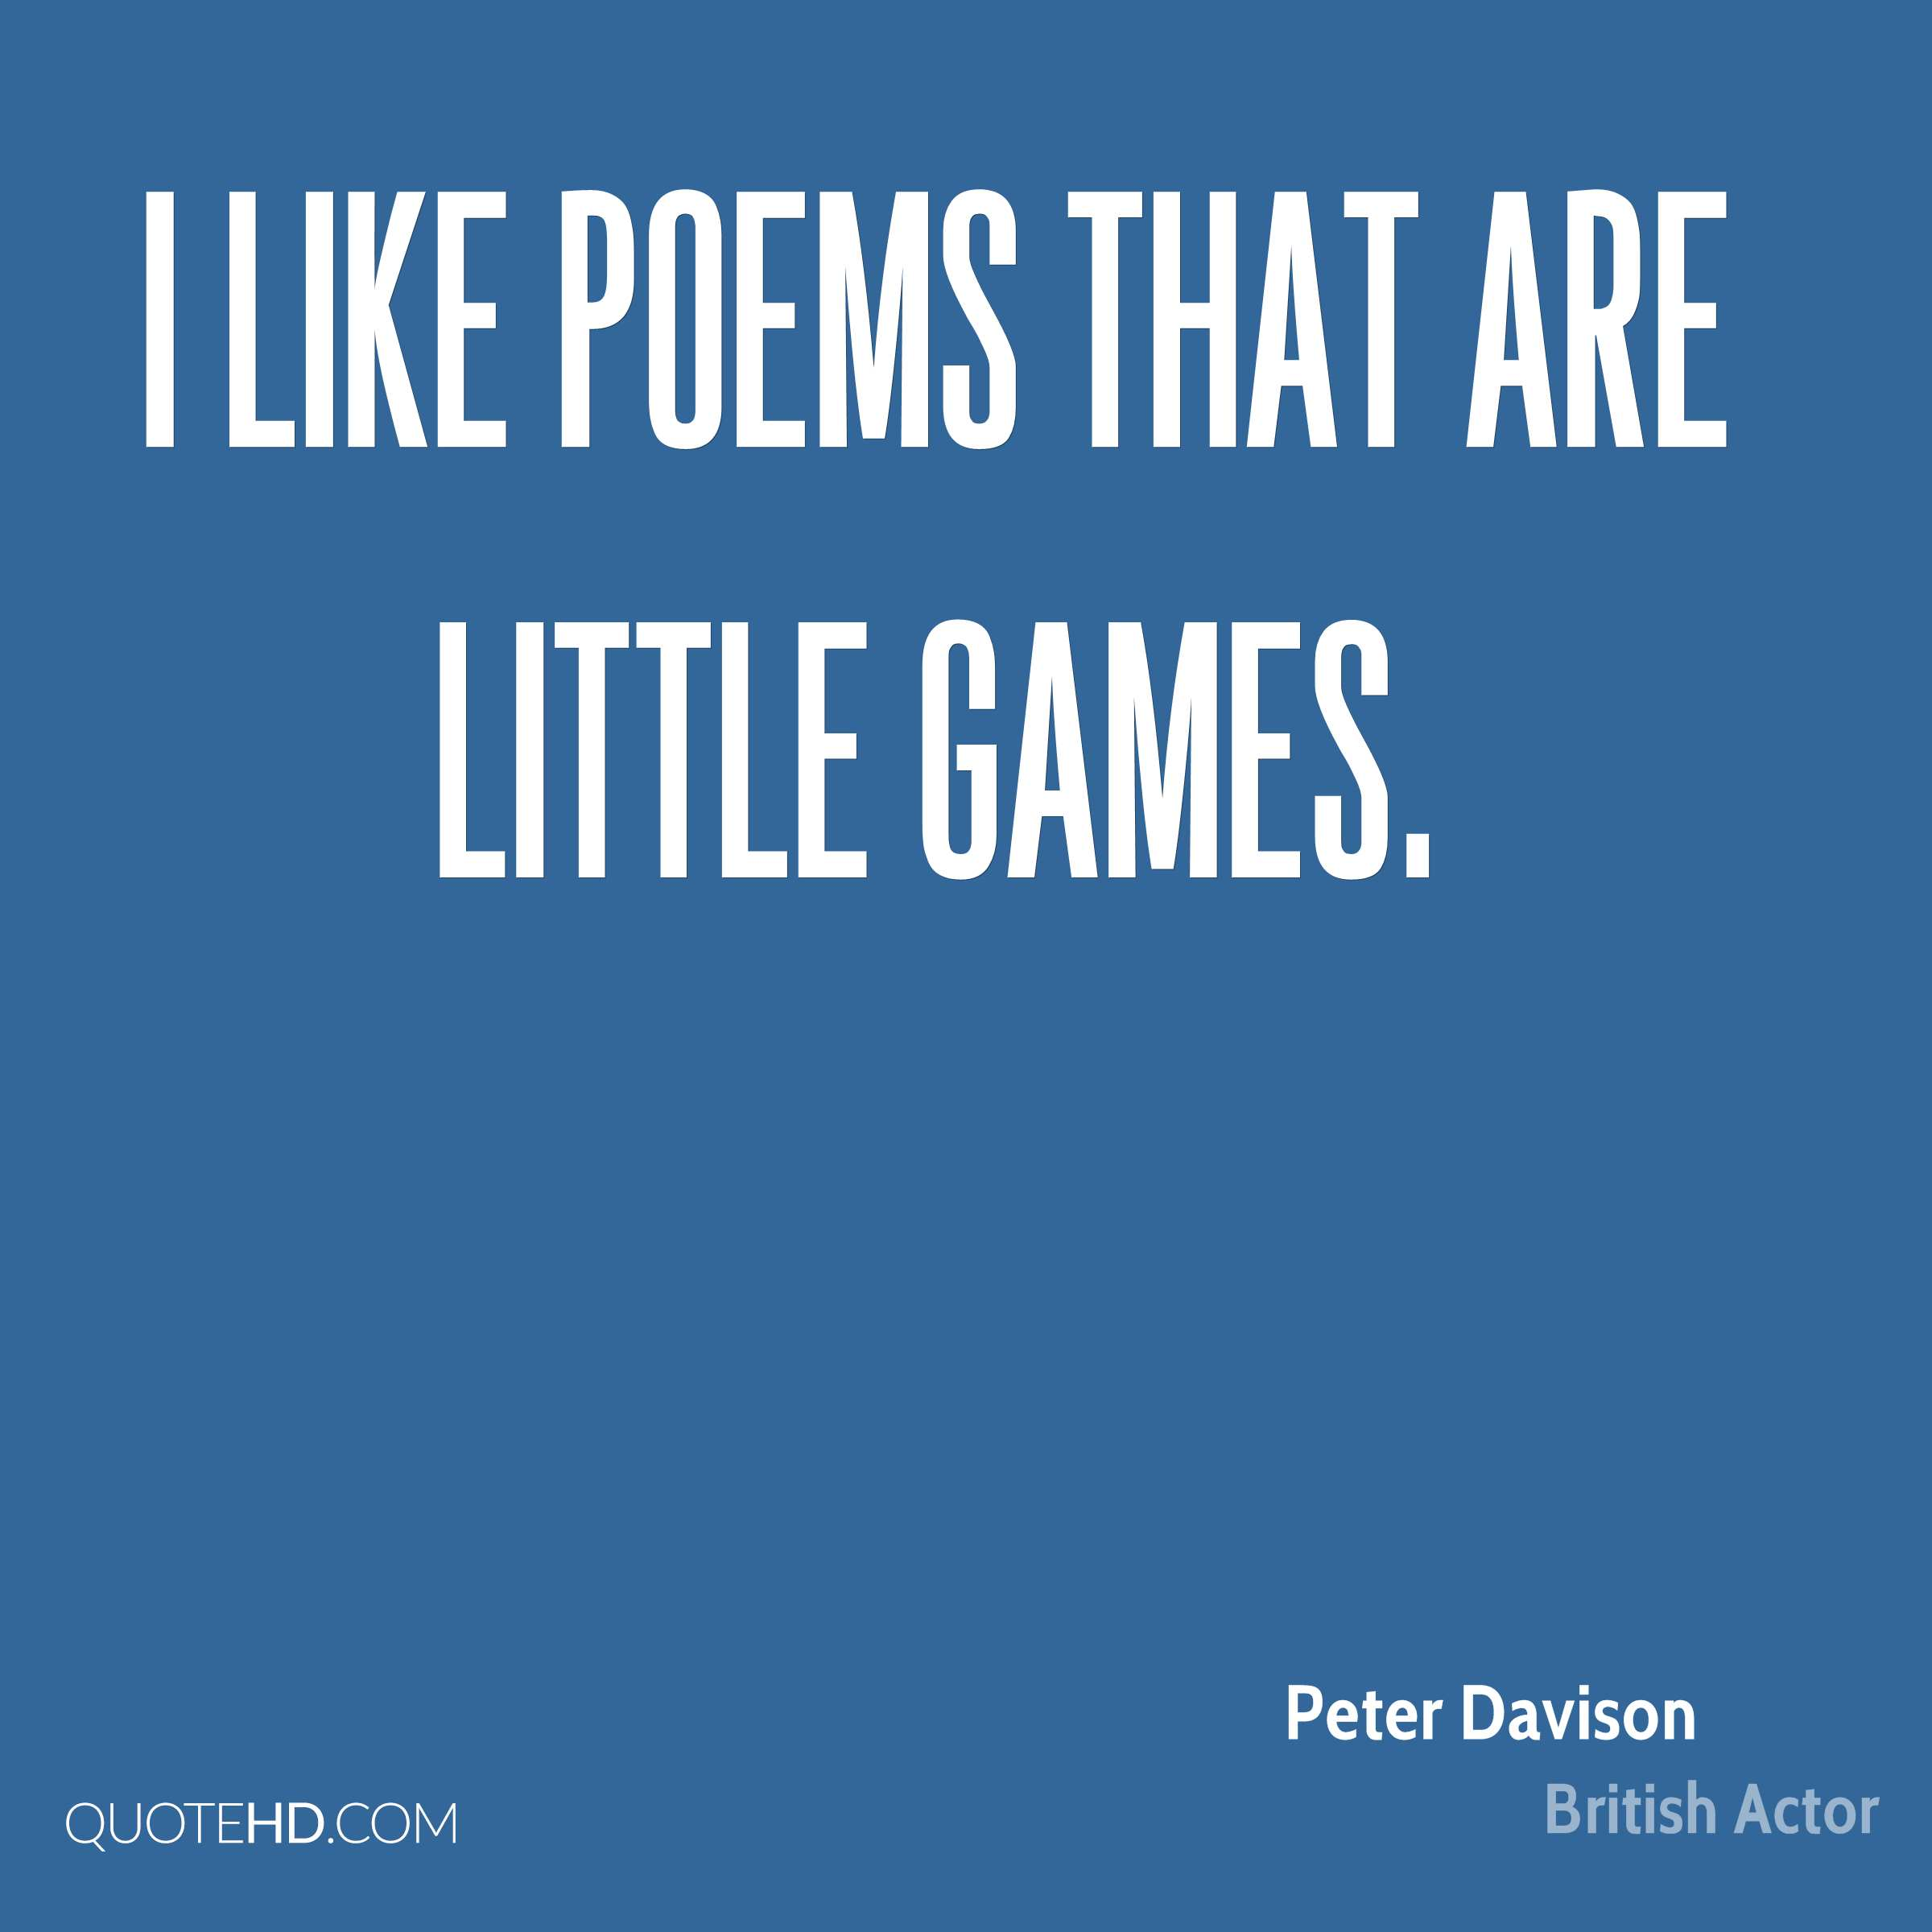 I like poems that are little games.